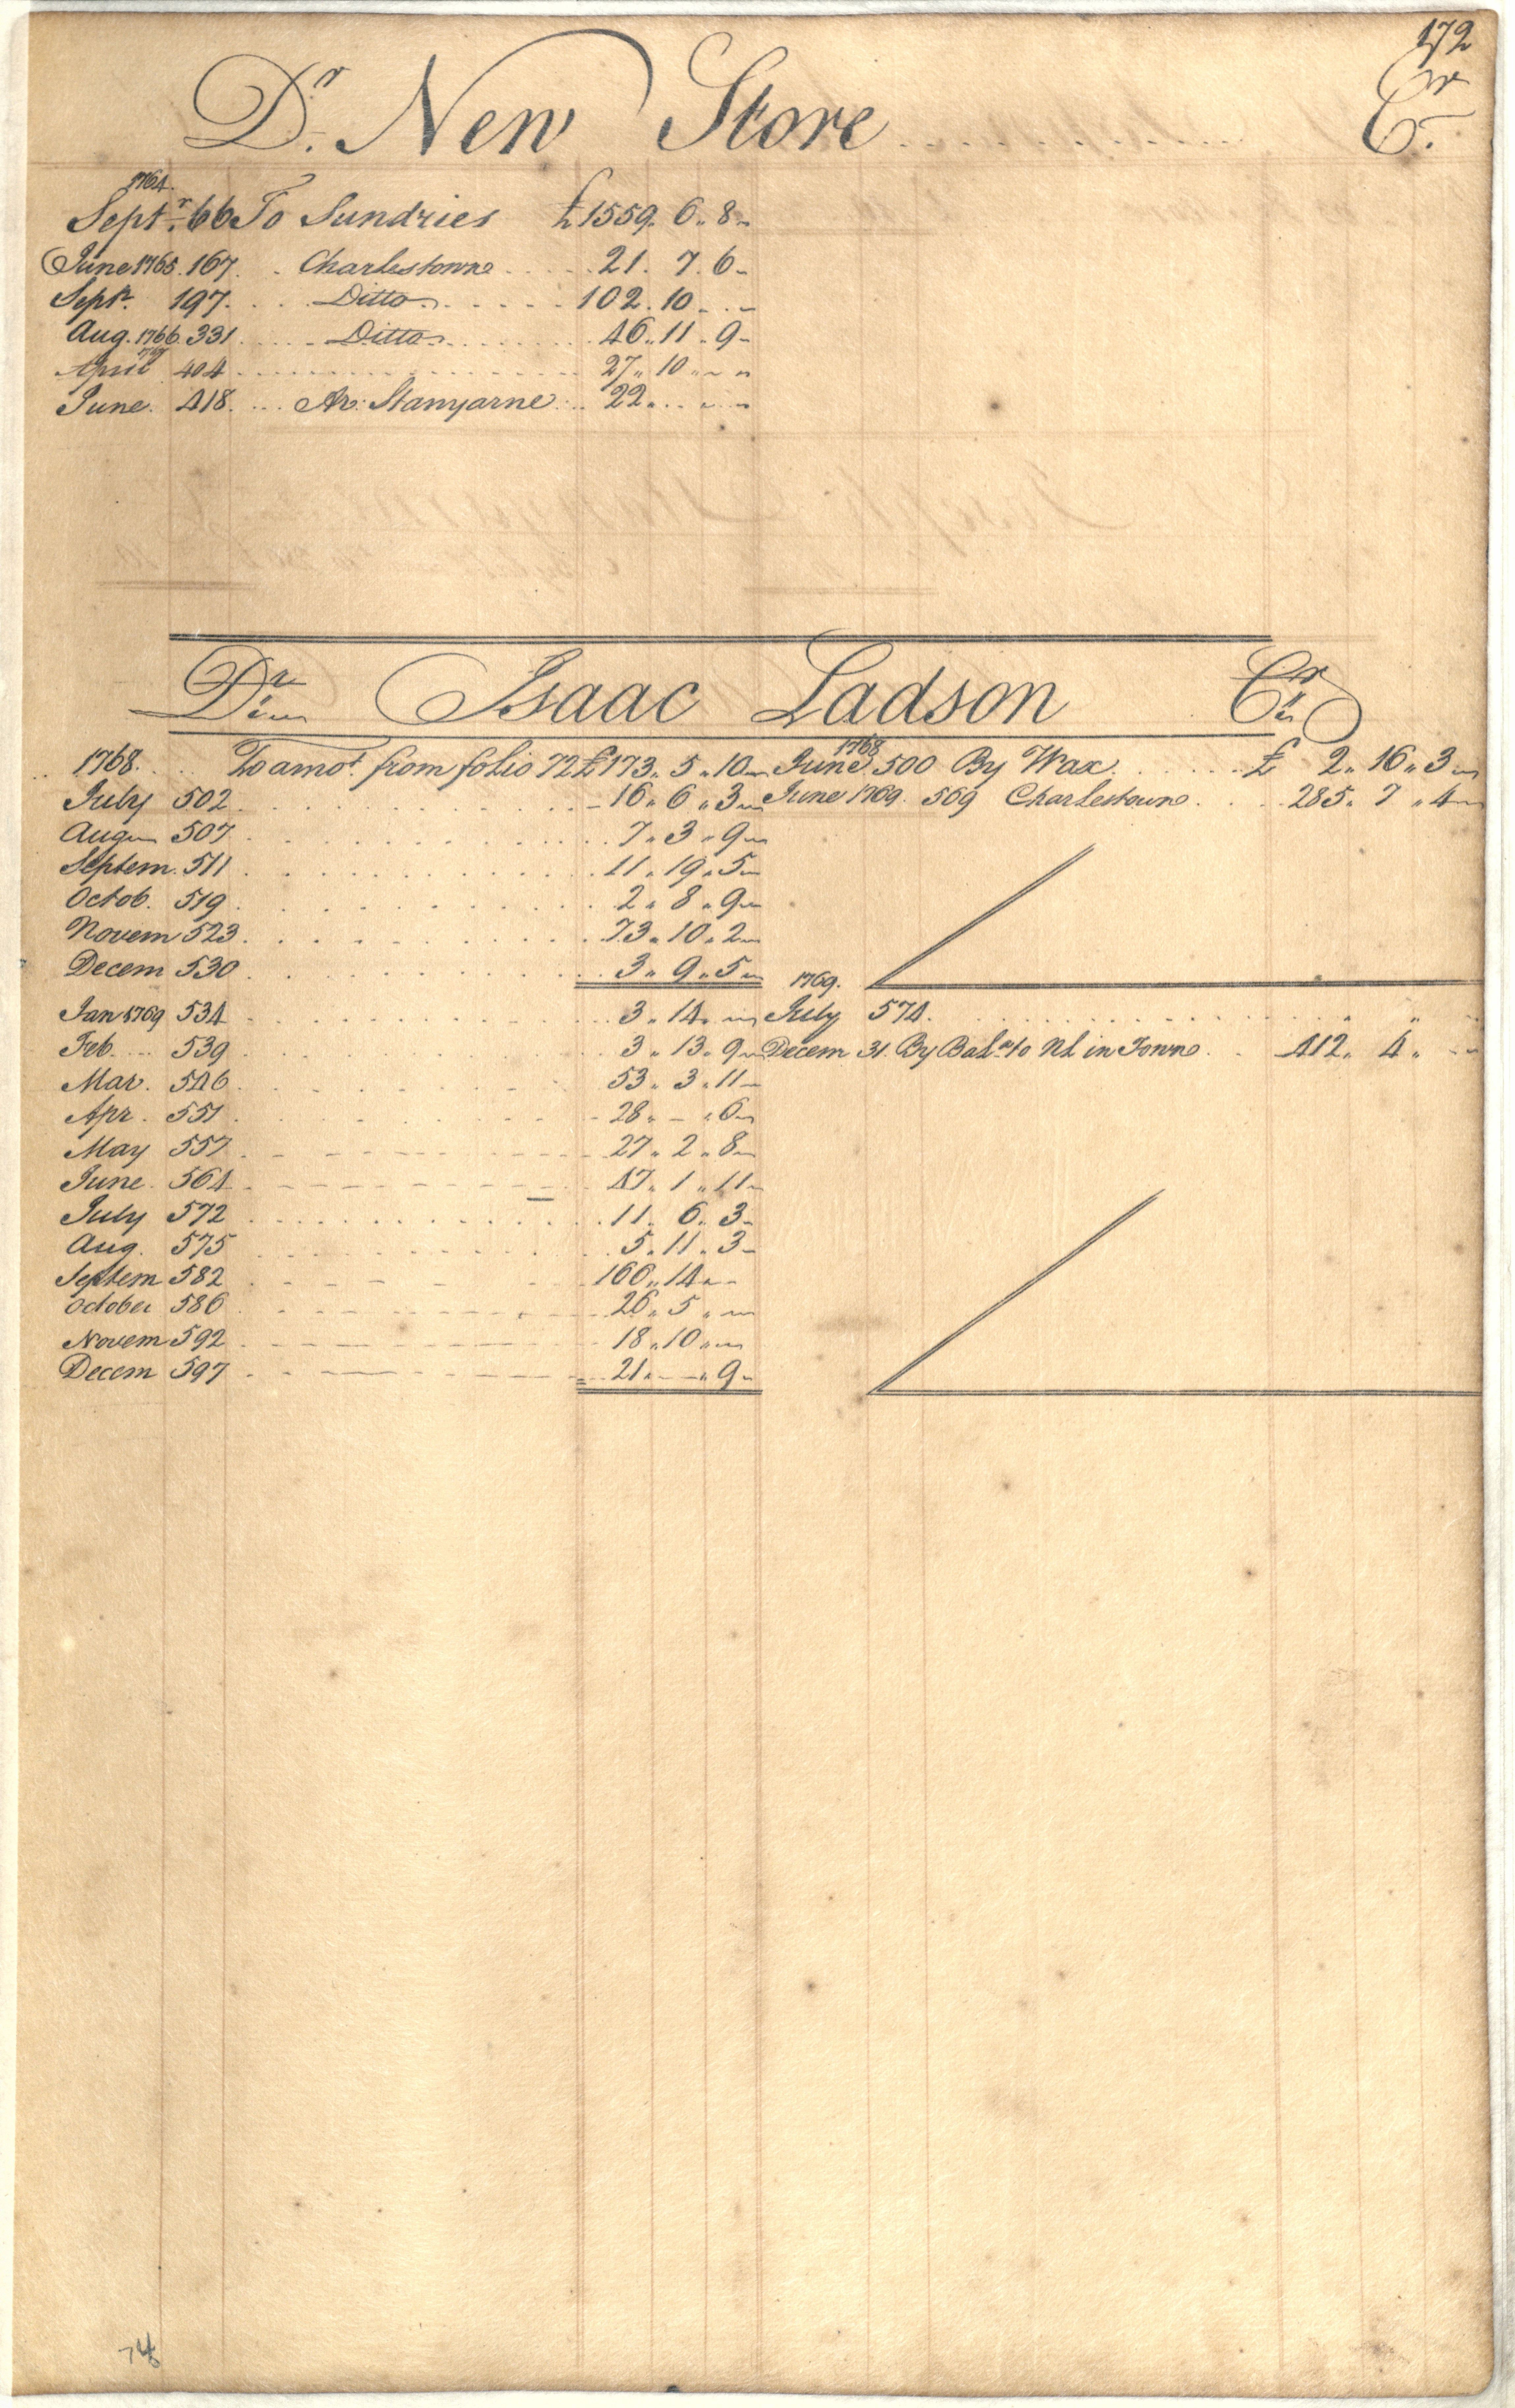 Plowden Weston's Business Ledger, page 172